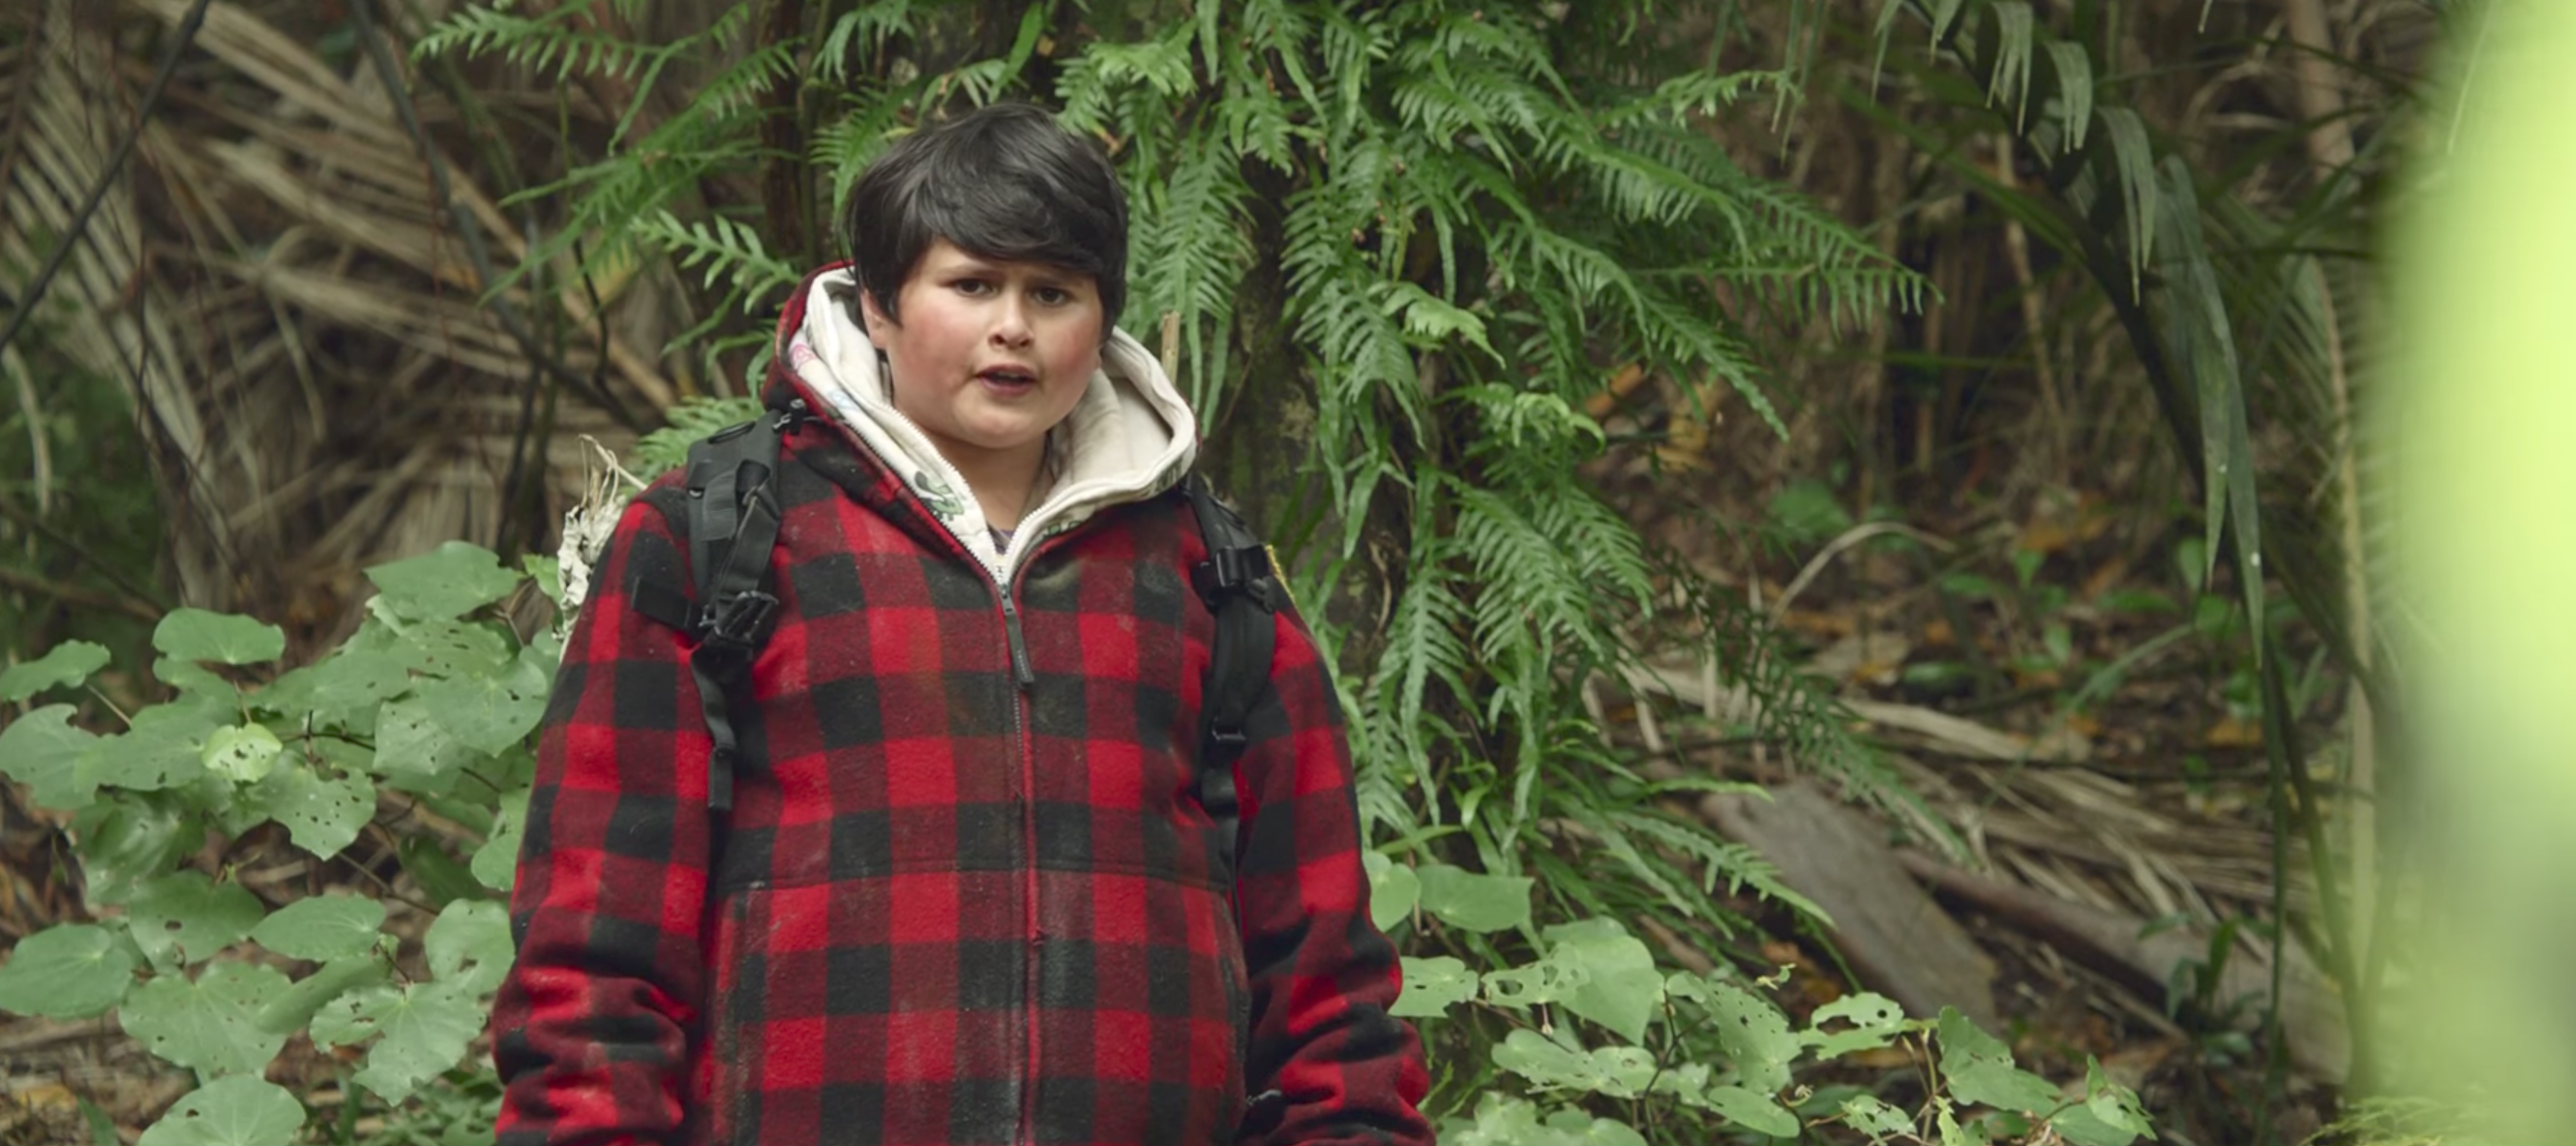 best movies on hulu : Hunt for the Wilderpeople